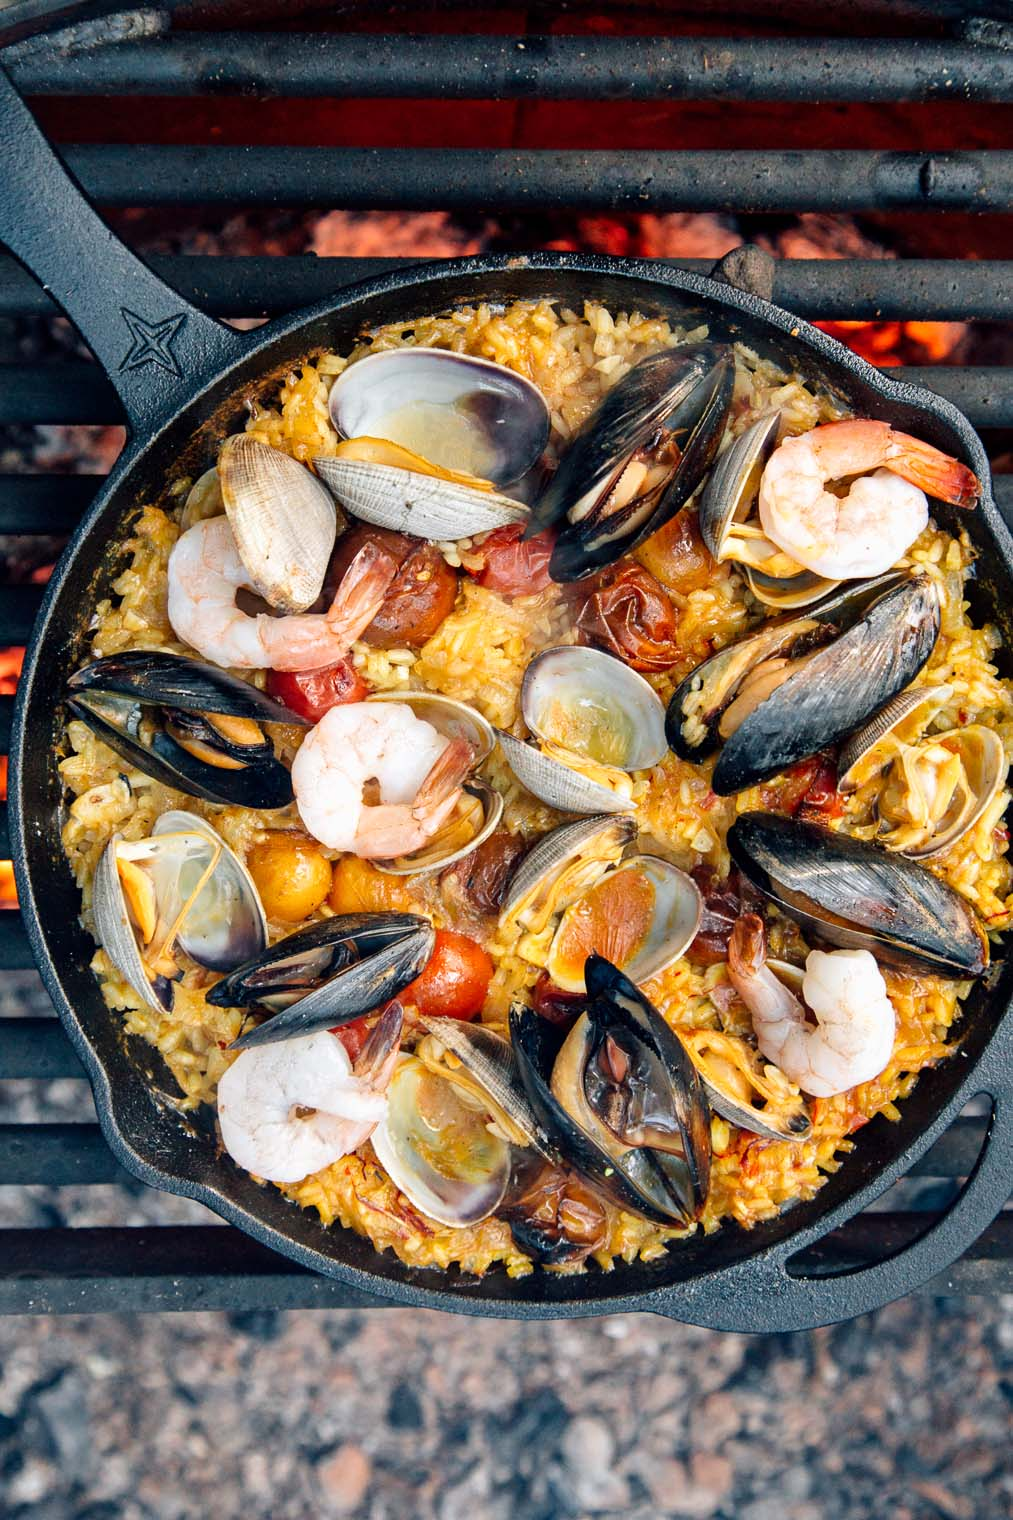 Paella in a cast iron skillet over a campfire